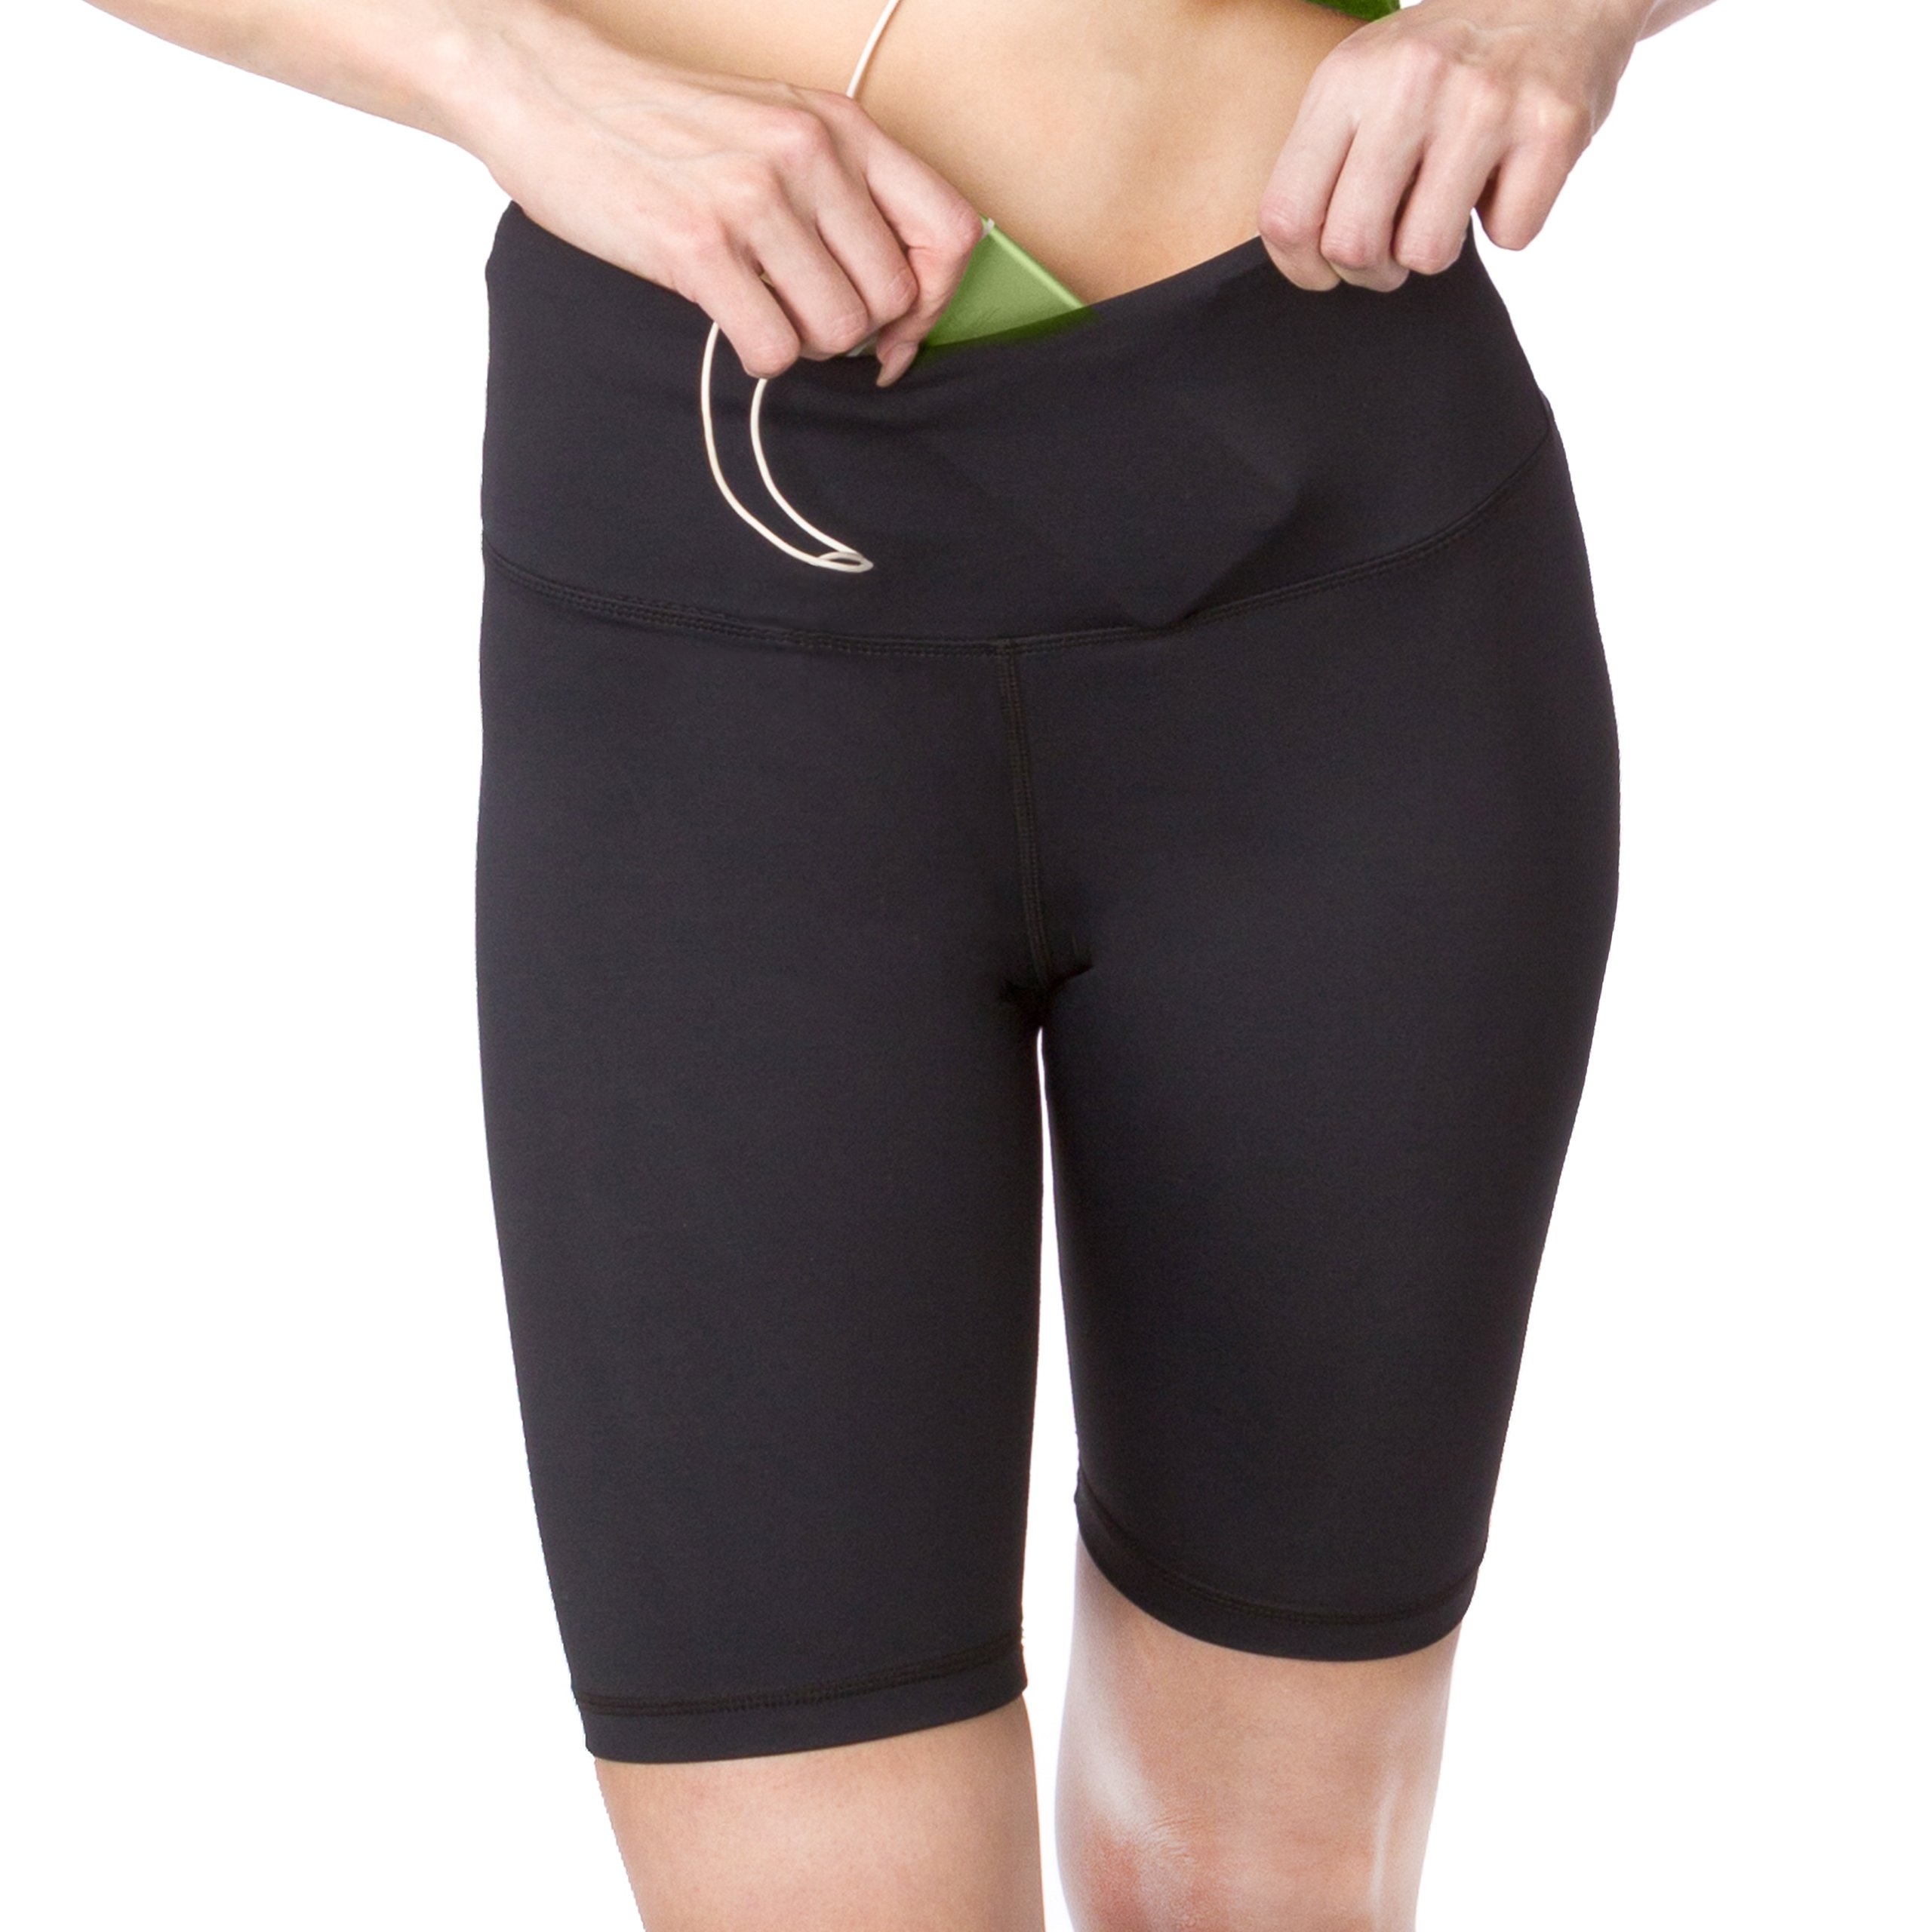 Leggings Shorts Active Long Shorts, Women's Workout Bike Running Shorts with Pockets and Tummy Control